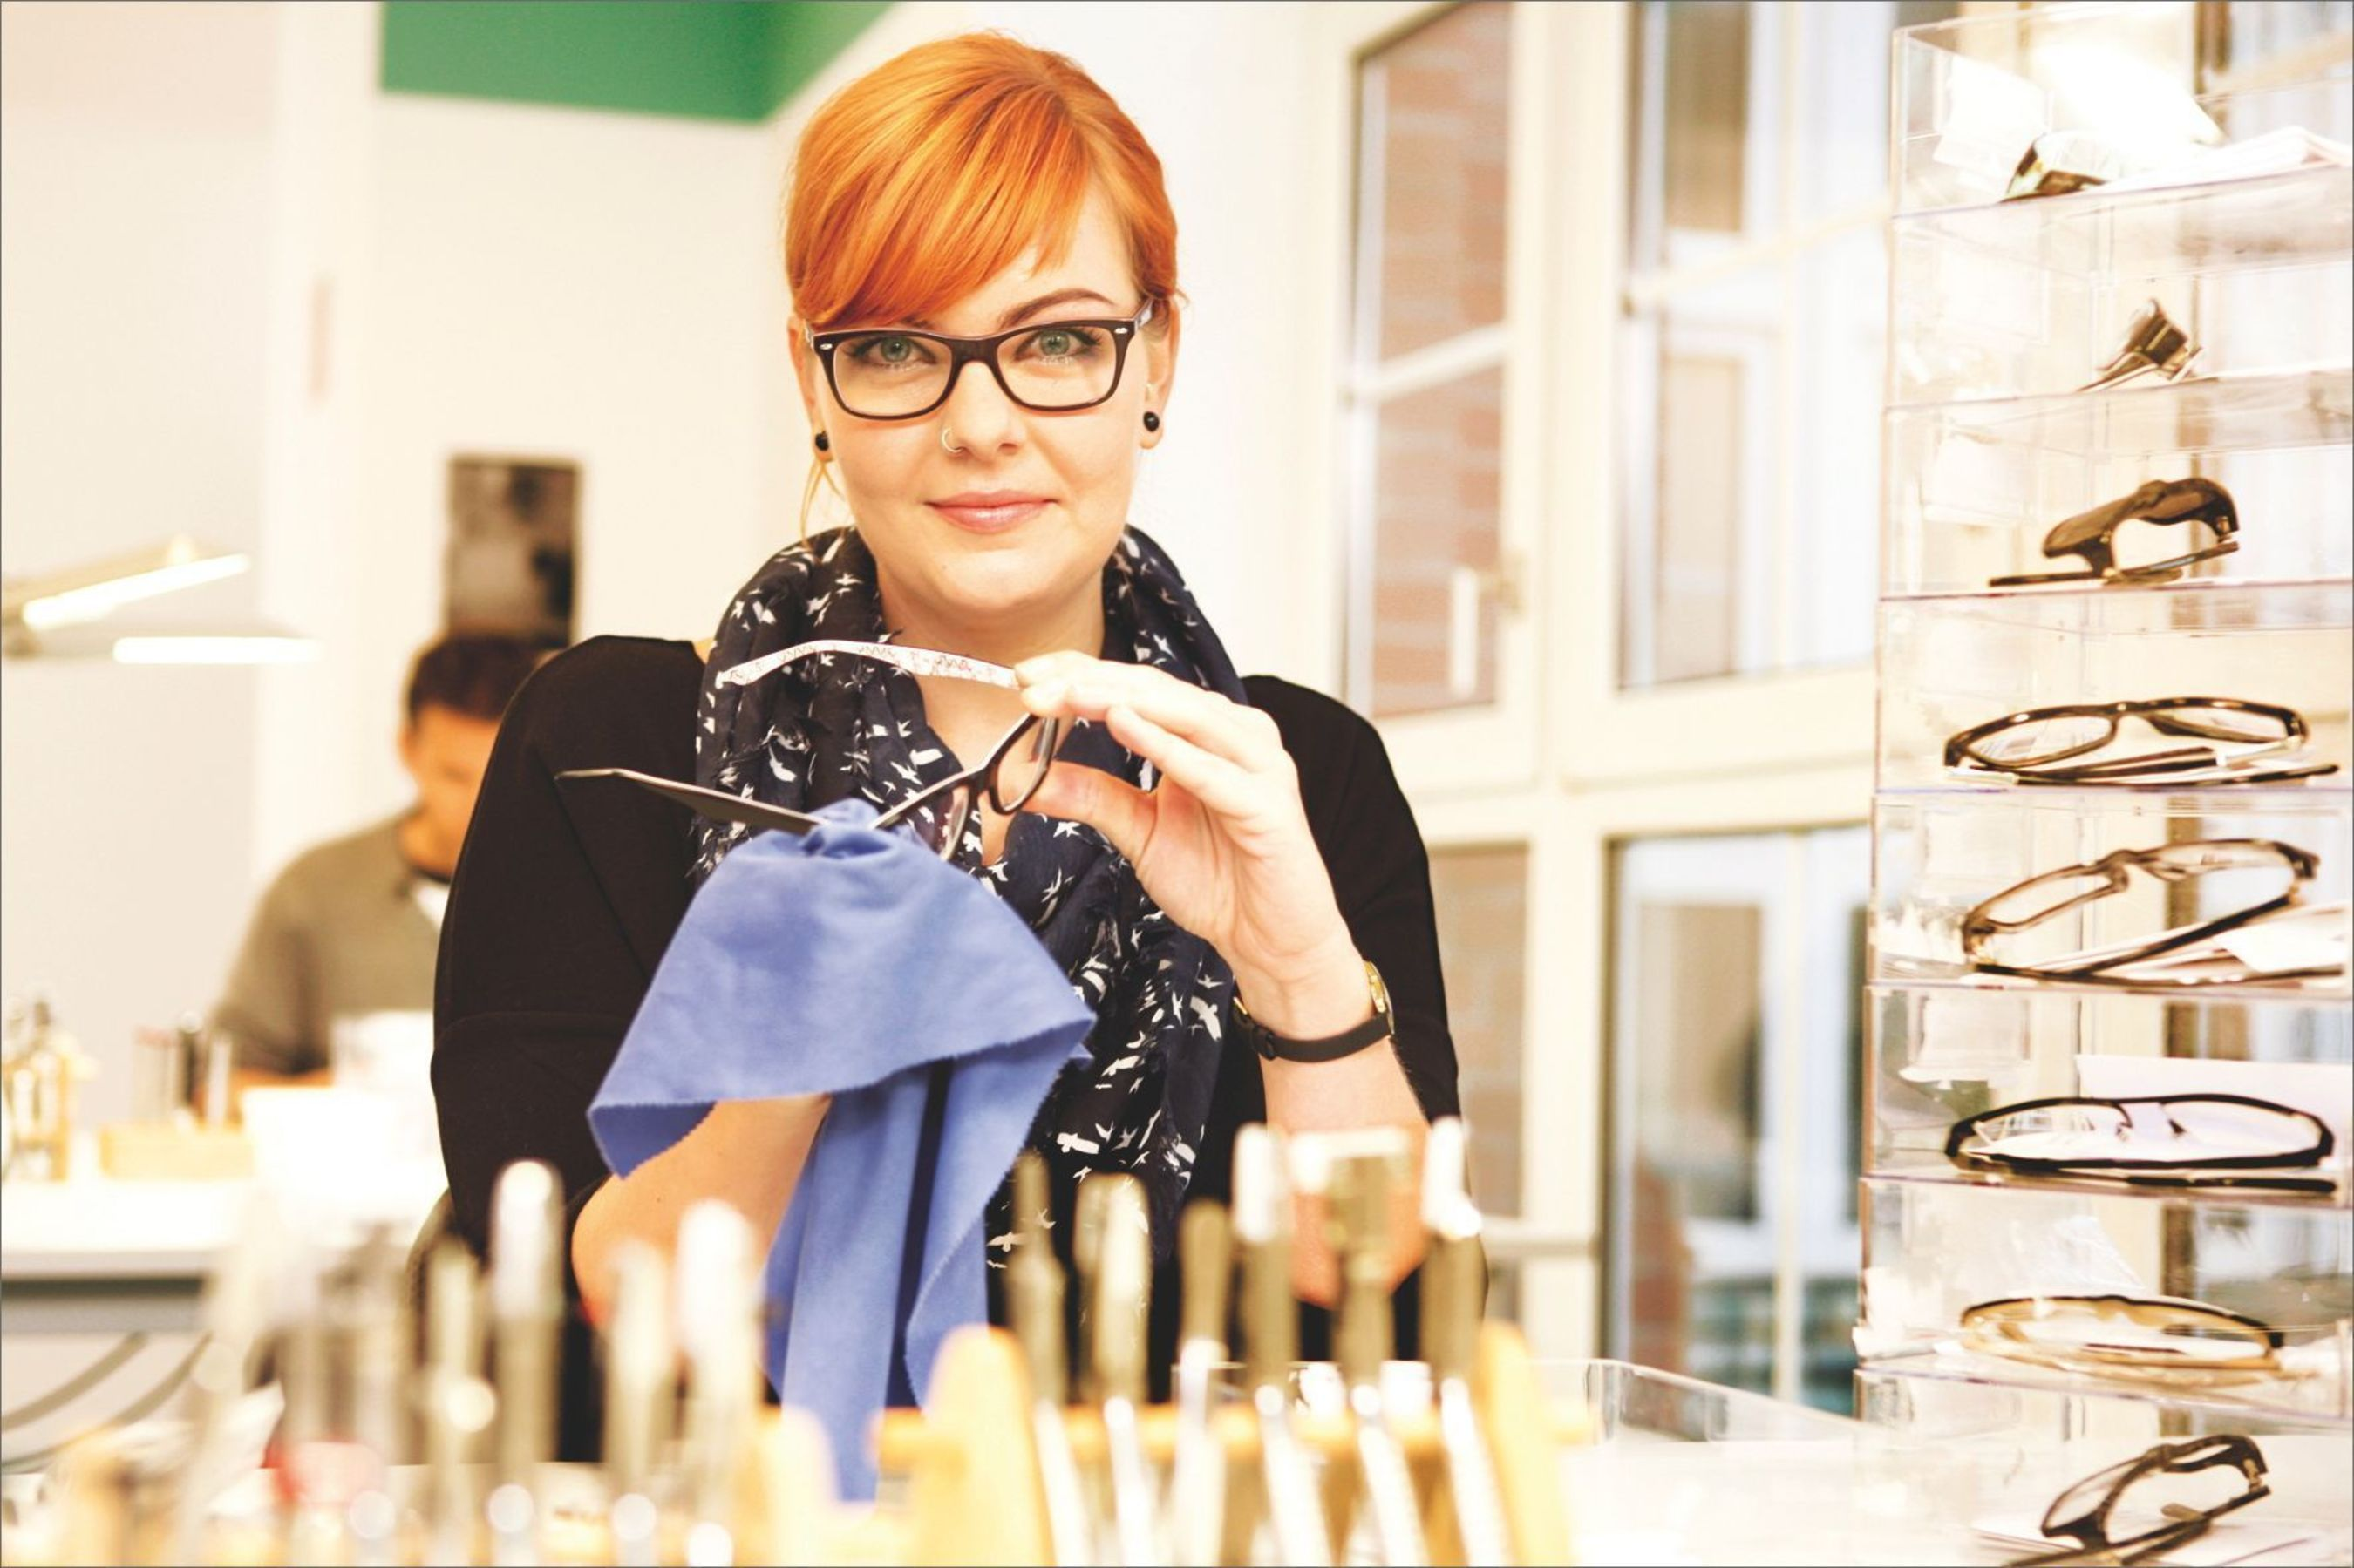 Mister Spex: Adjustment and polishing of glasses in the own opticians workshop (Copyright: Mister Spex) / Europe's leading online optician strengthens market position: Mister Spex receives 40 Million USD / US bank Goldman Sachs leads financing round (PRNewsFoto/Mister Spex GmbH)